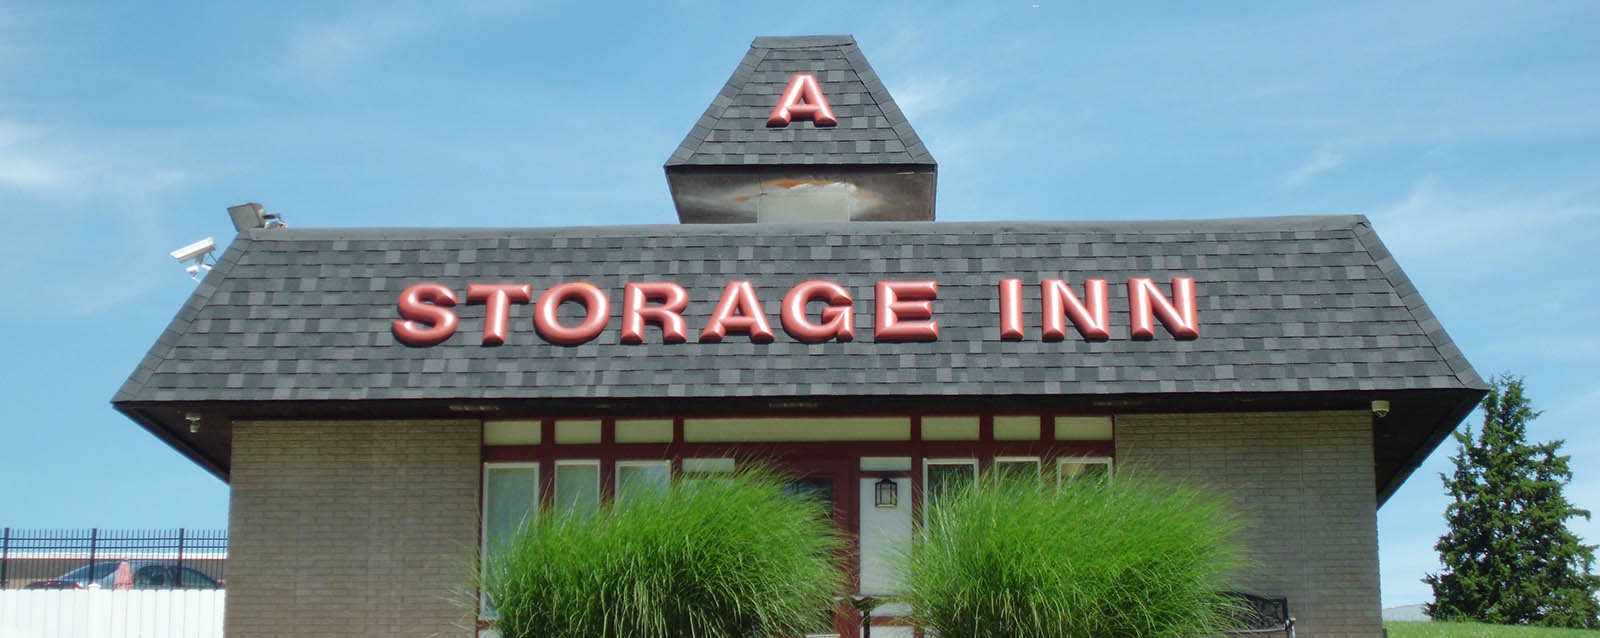 Self storage entry in Clarkson